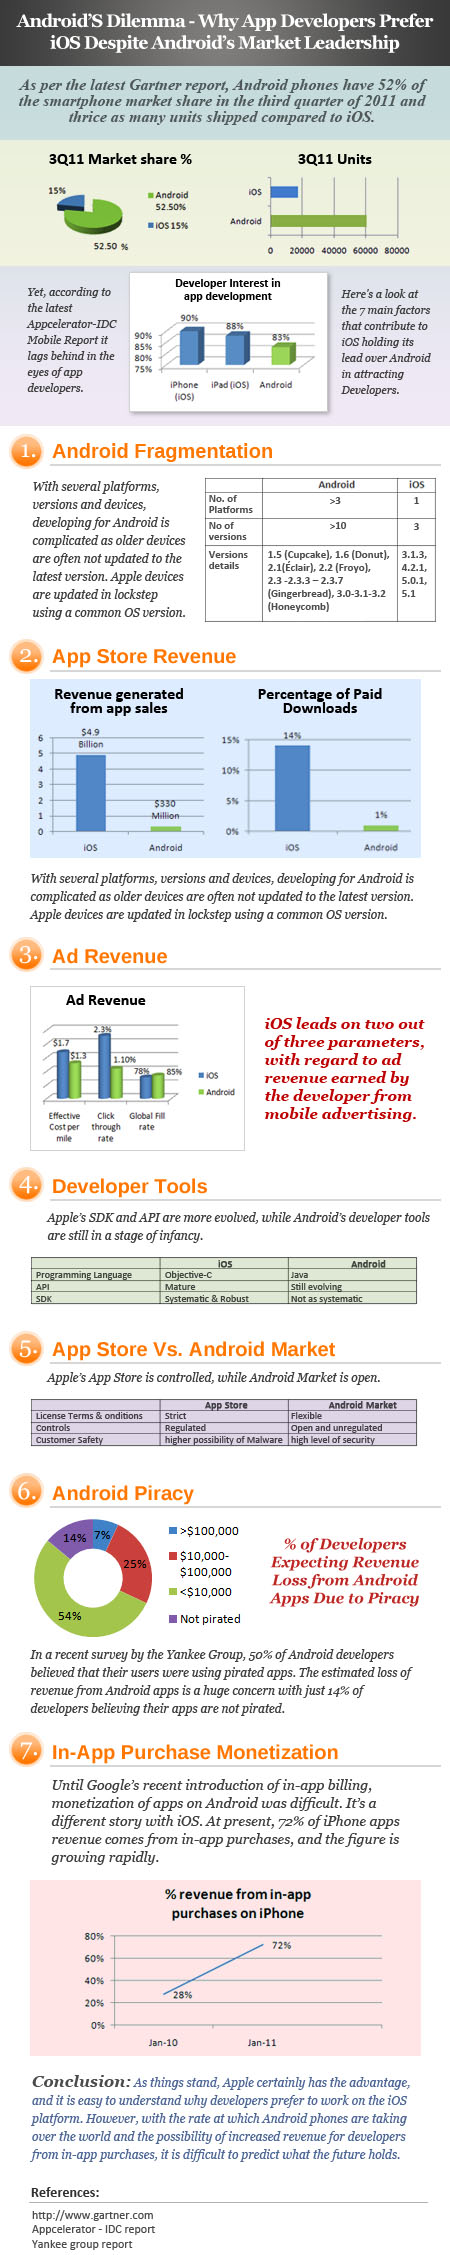 Why App Developers Prefer iOS Over Android [INFOGRAPHIC]